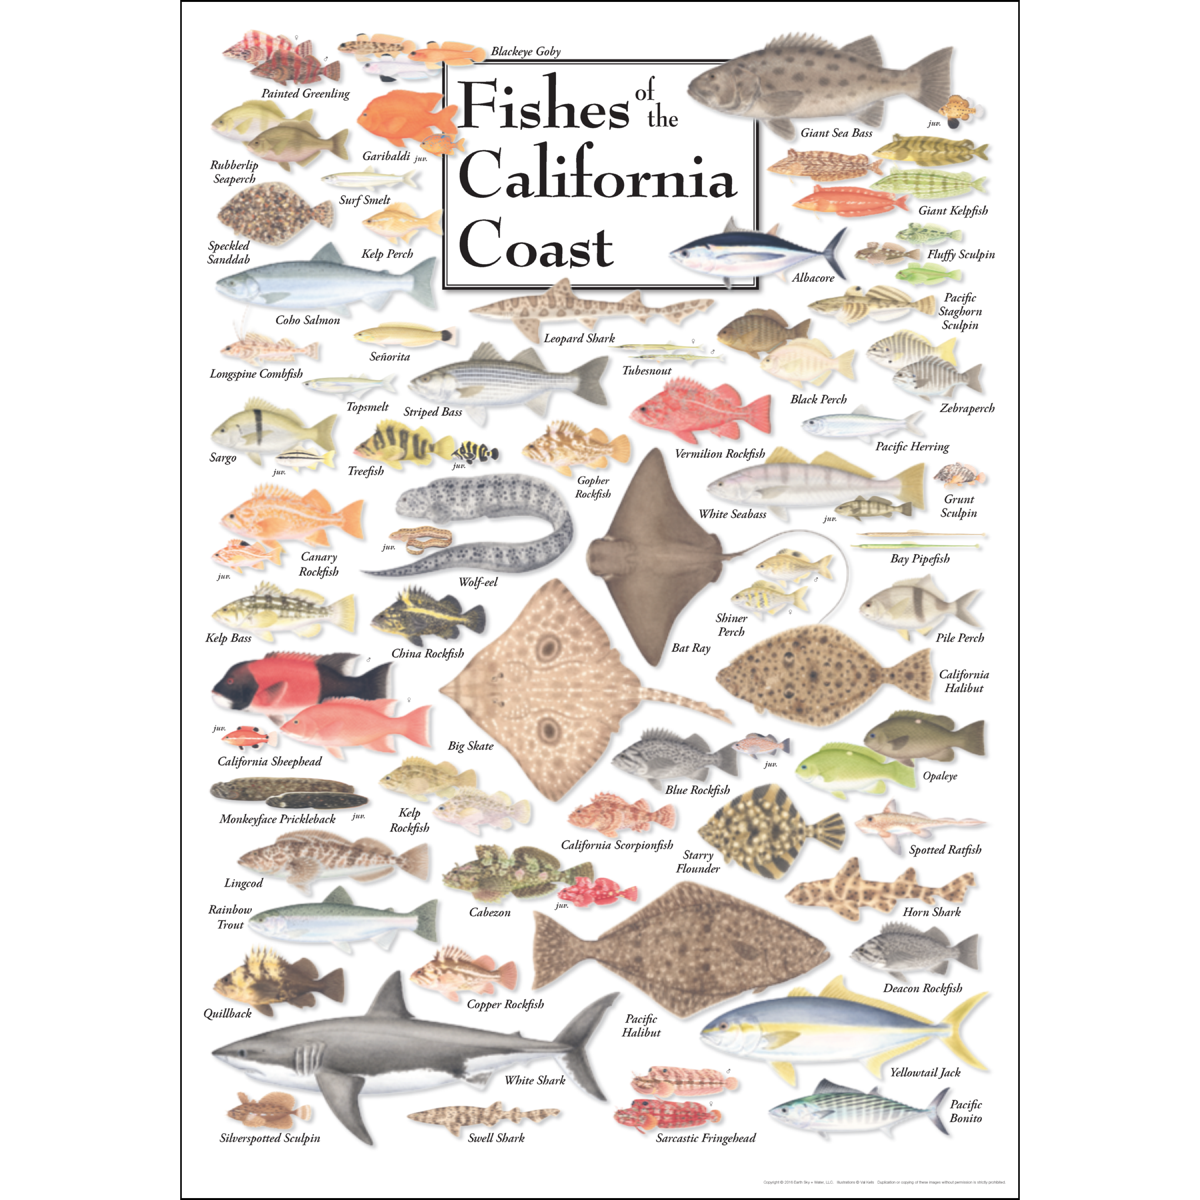 Fishes of the california coast poster earth sky water for California fishing guide